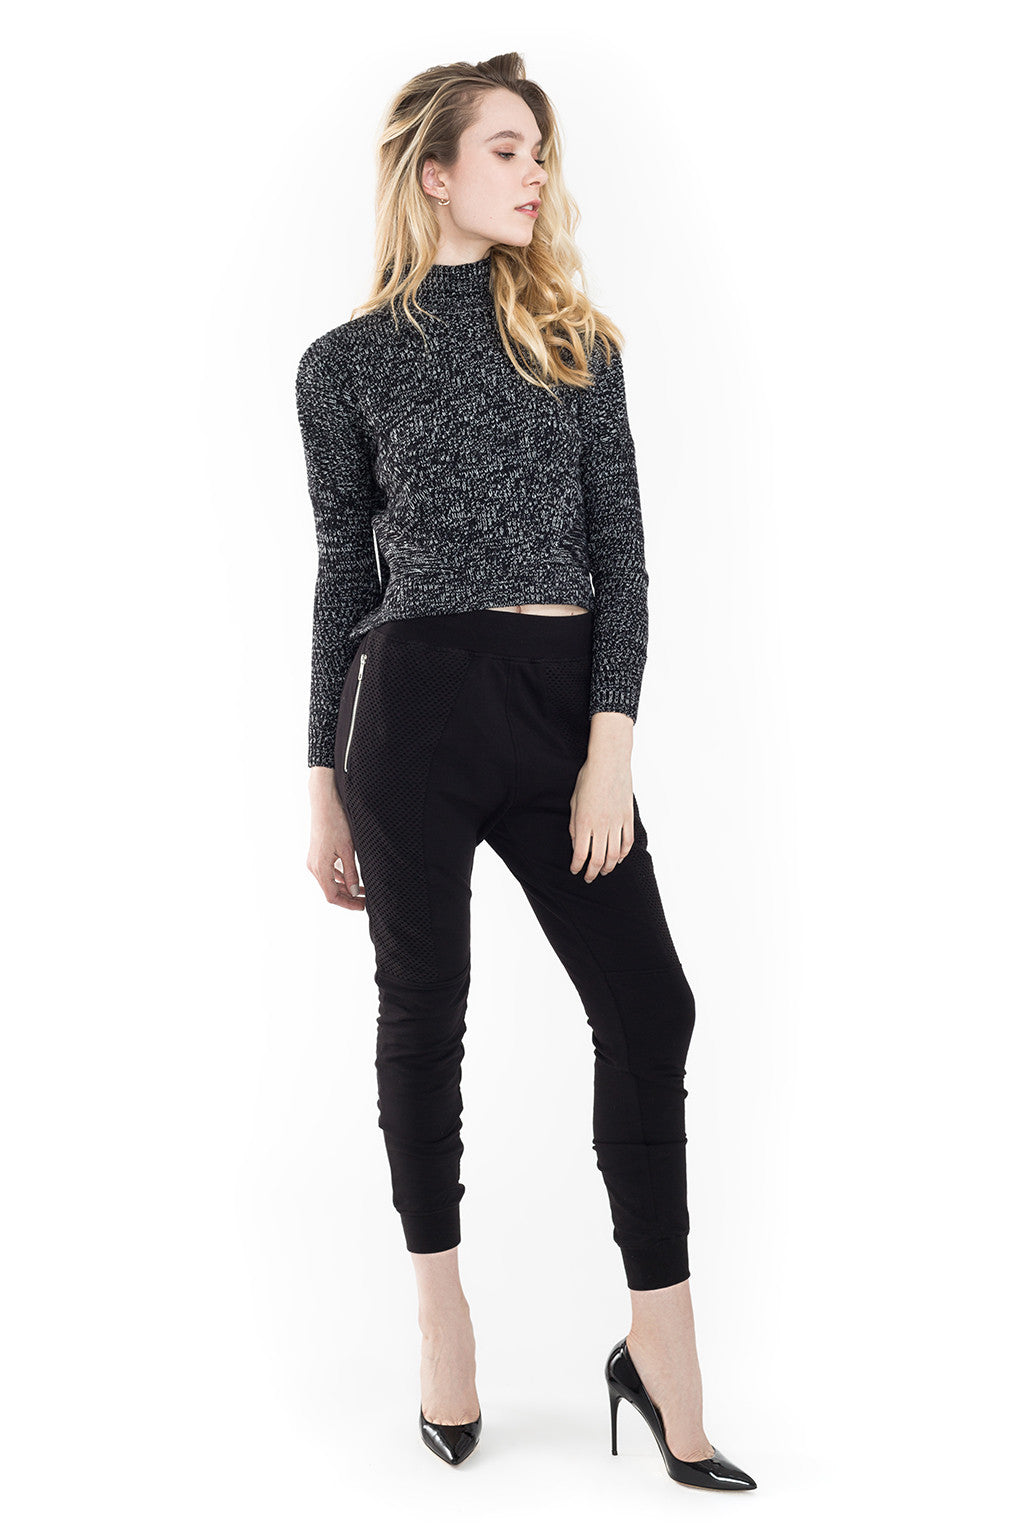 Paramore W Crop Sweater - Eleven Paris - Sweater - TOPGEARNY